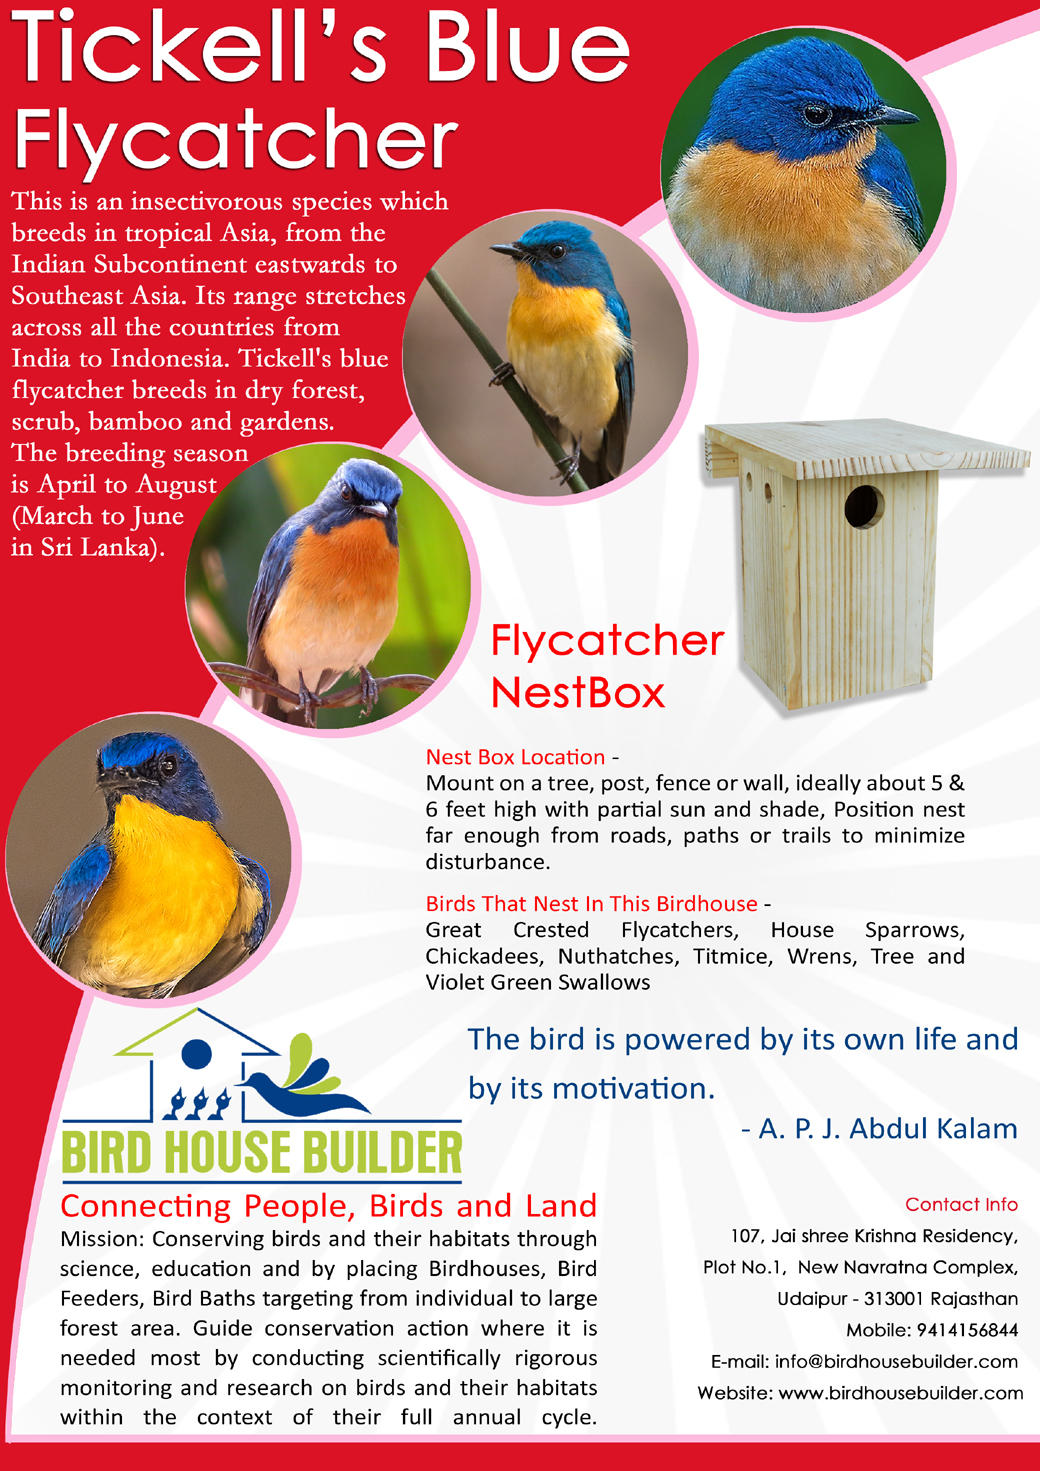 Flycatcher NestBox